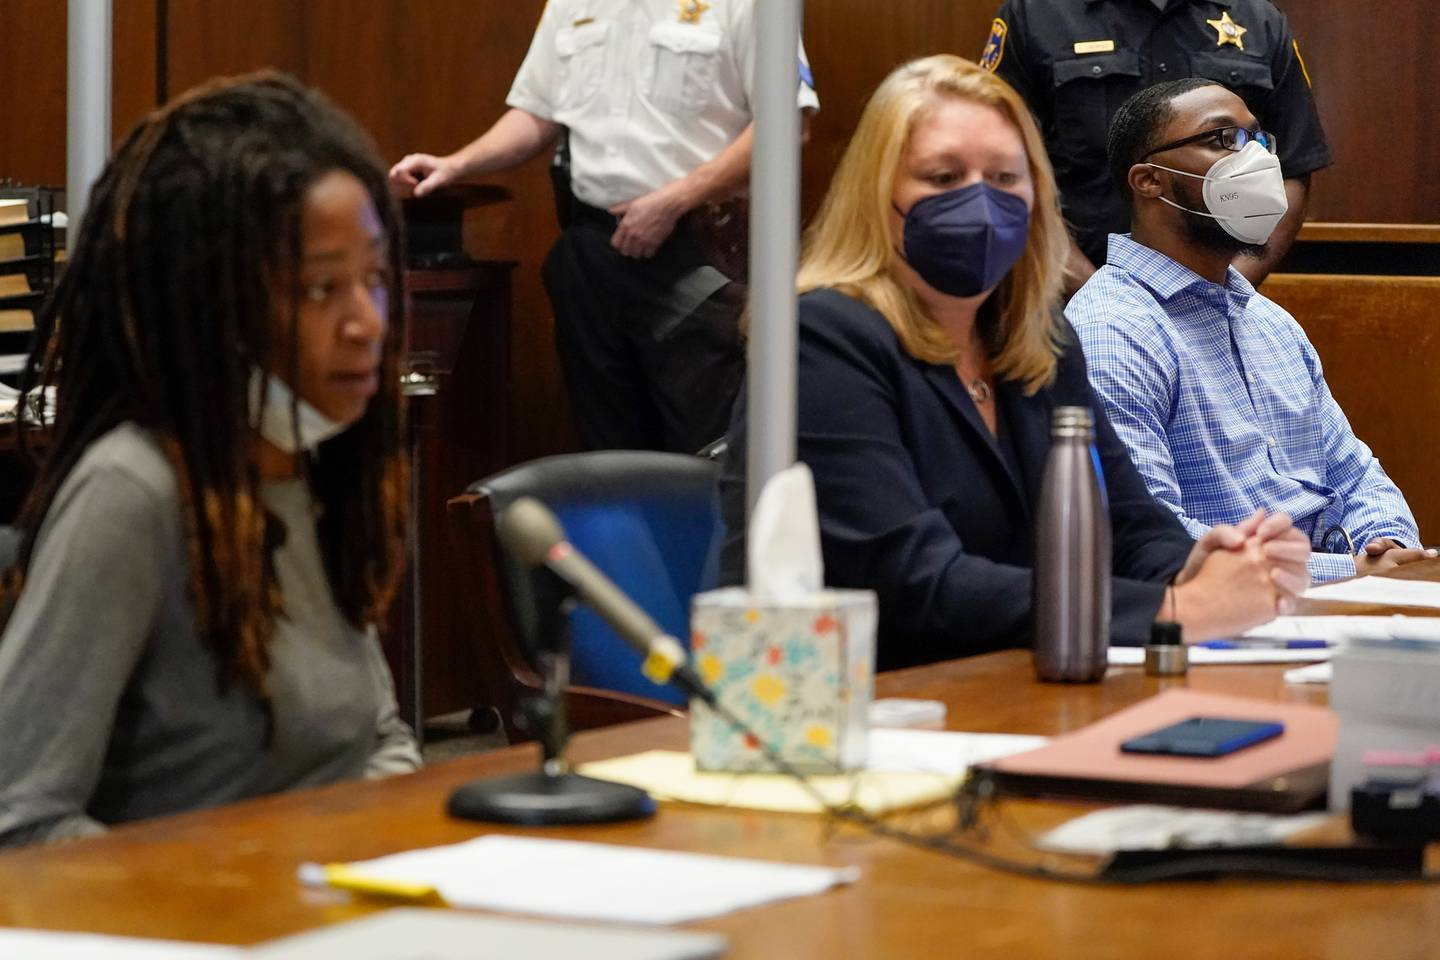 Tiffany Taylor, left, who survived an attack by Khalil Wheeler-Weaver, right, speaks during his sentencing. Photo / Seth Wenig, Pool via AP